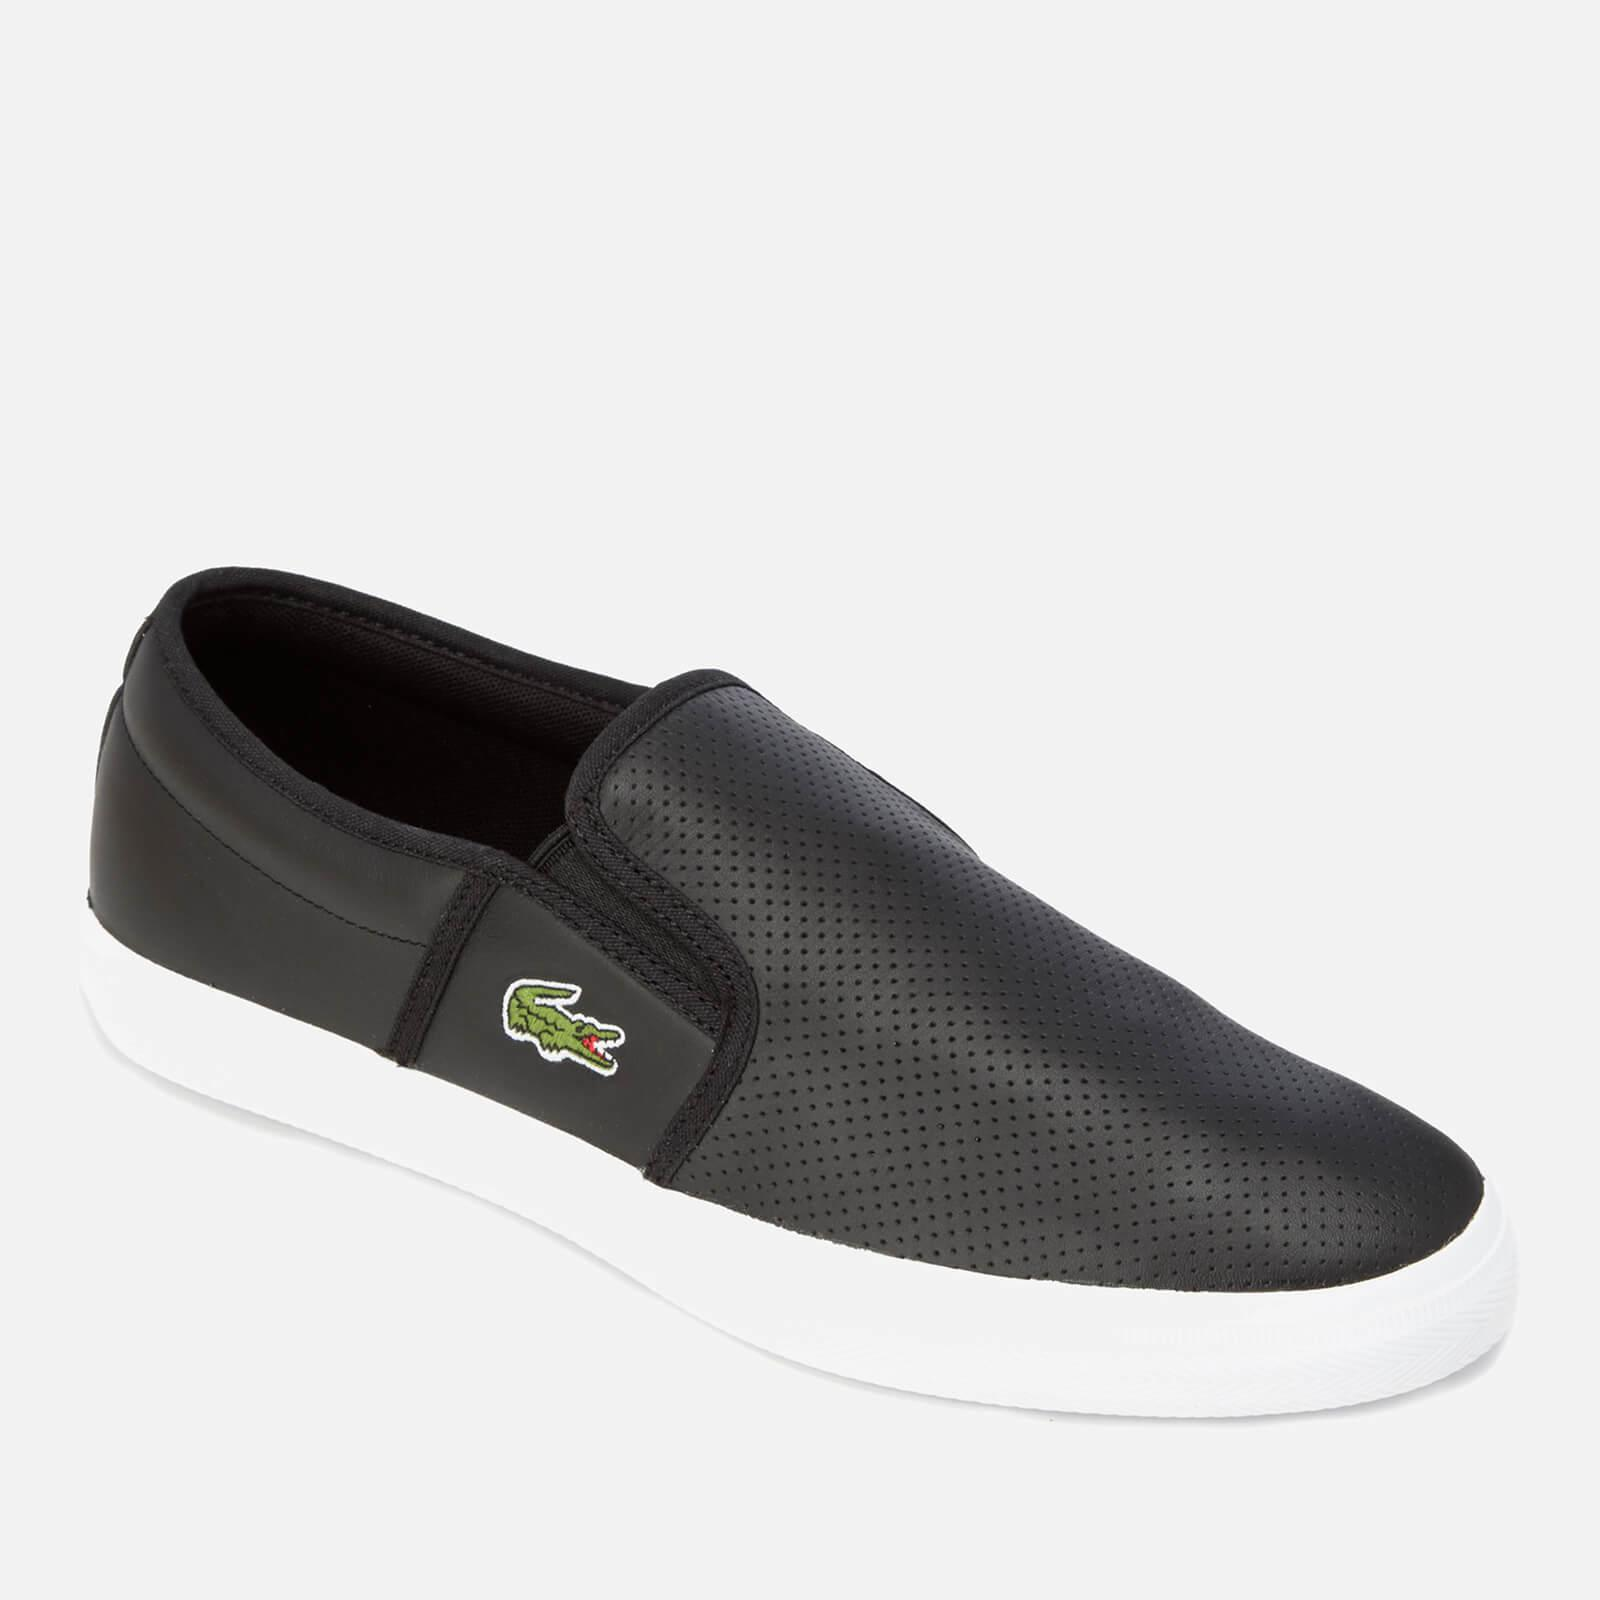 94e61a63f0676f Lacoste Gazon Bl 1 Leather Slip-on Trainers in Black for Men - Lyst